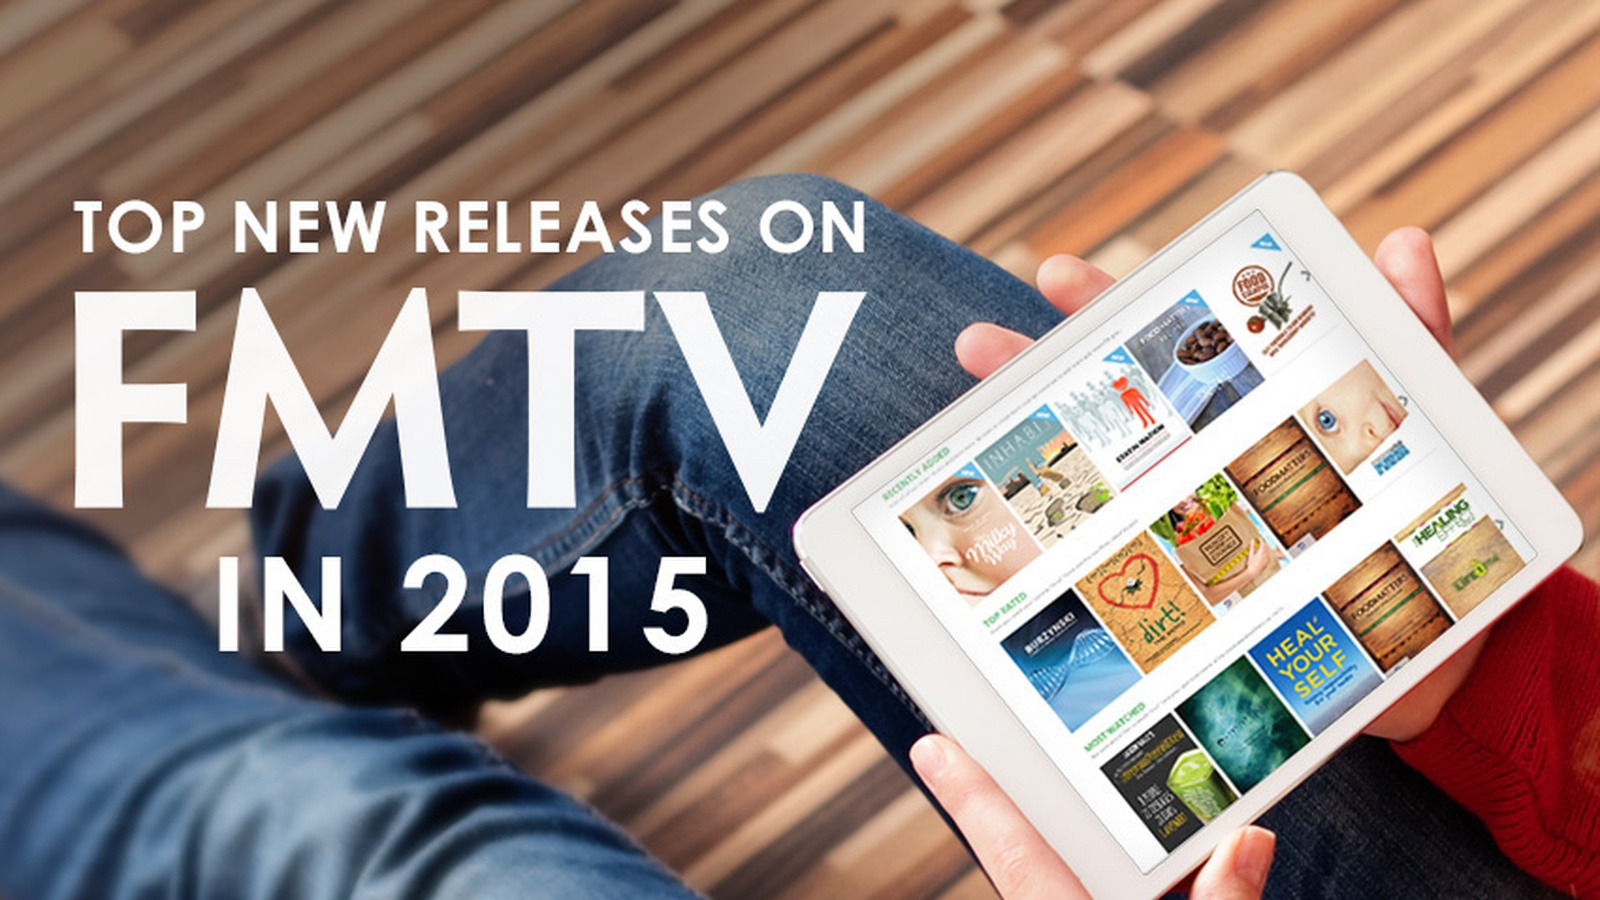 Top New Releases On FMTV 2015